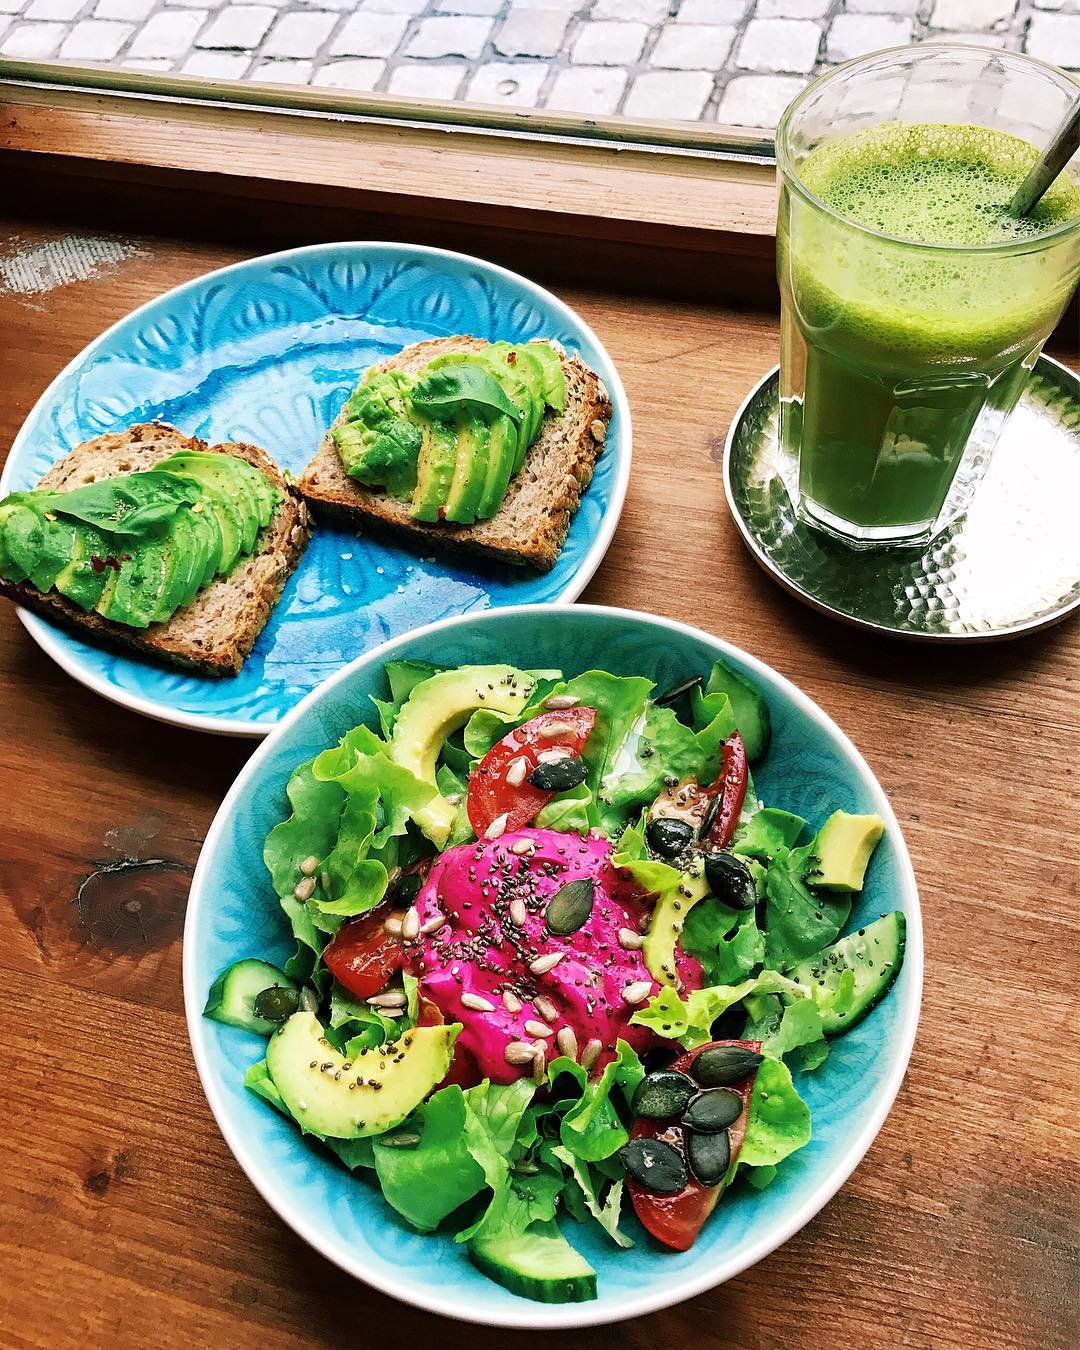 Green juice and healthy lunch - Lee from America